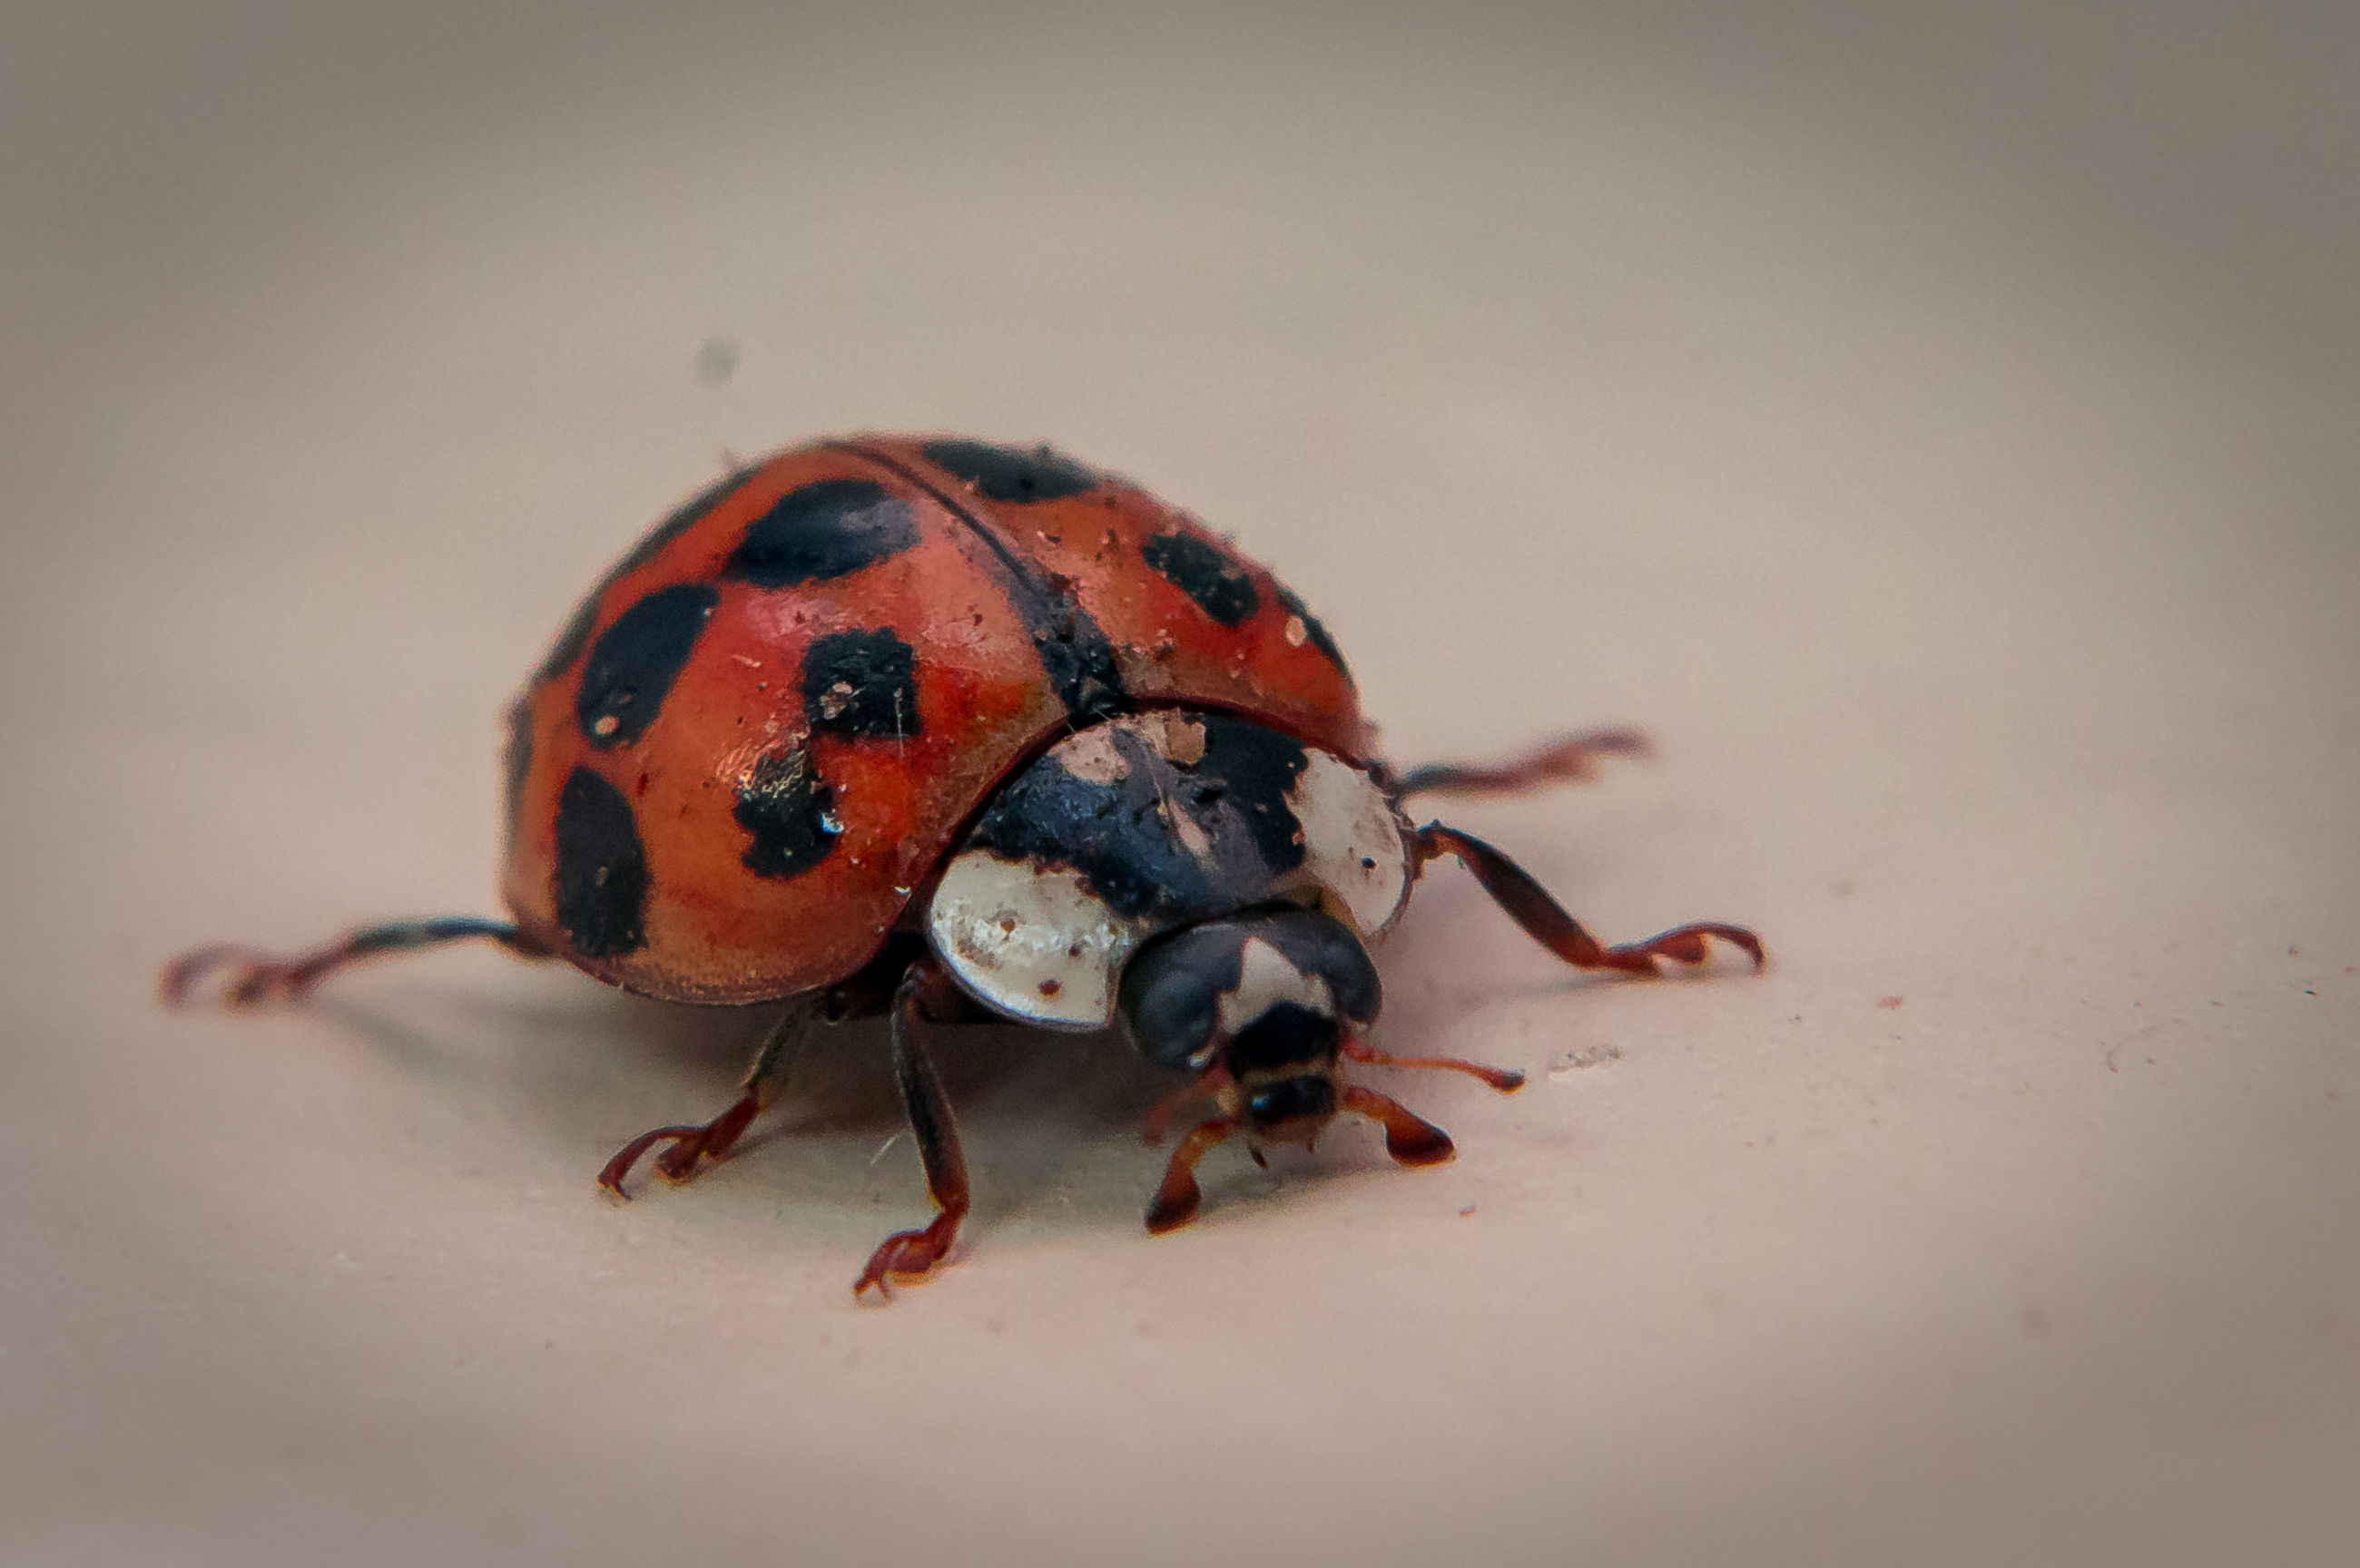 animal themes, one animal, insect, wildlife, animals in the wild, close-up, indoors, ladybug, selective focus, high angle view, red, no people, nature, brown, studio shot, wall - building feature, day, dry, vignette, animal antenna